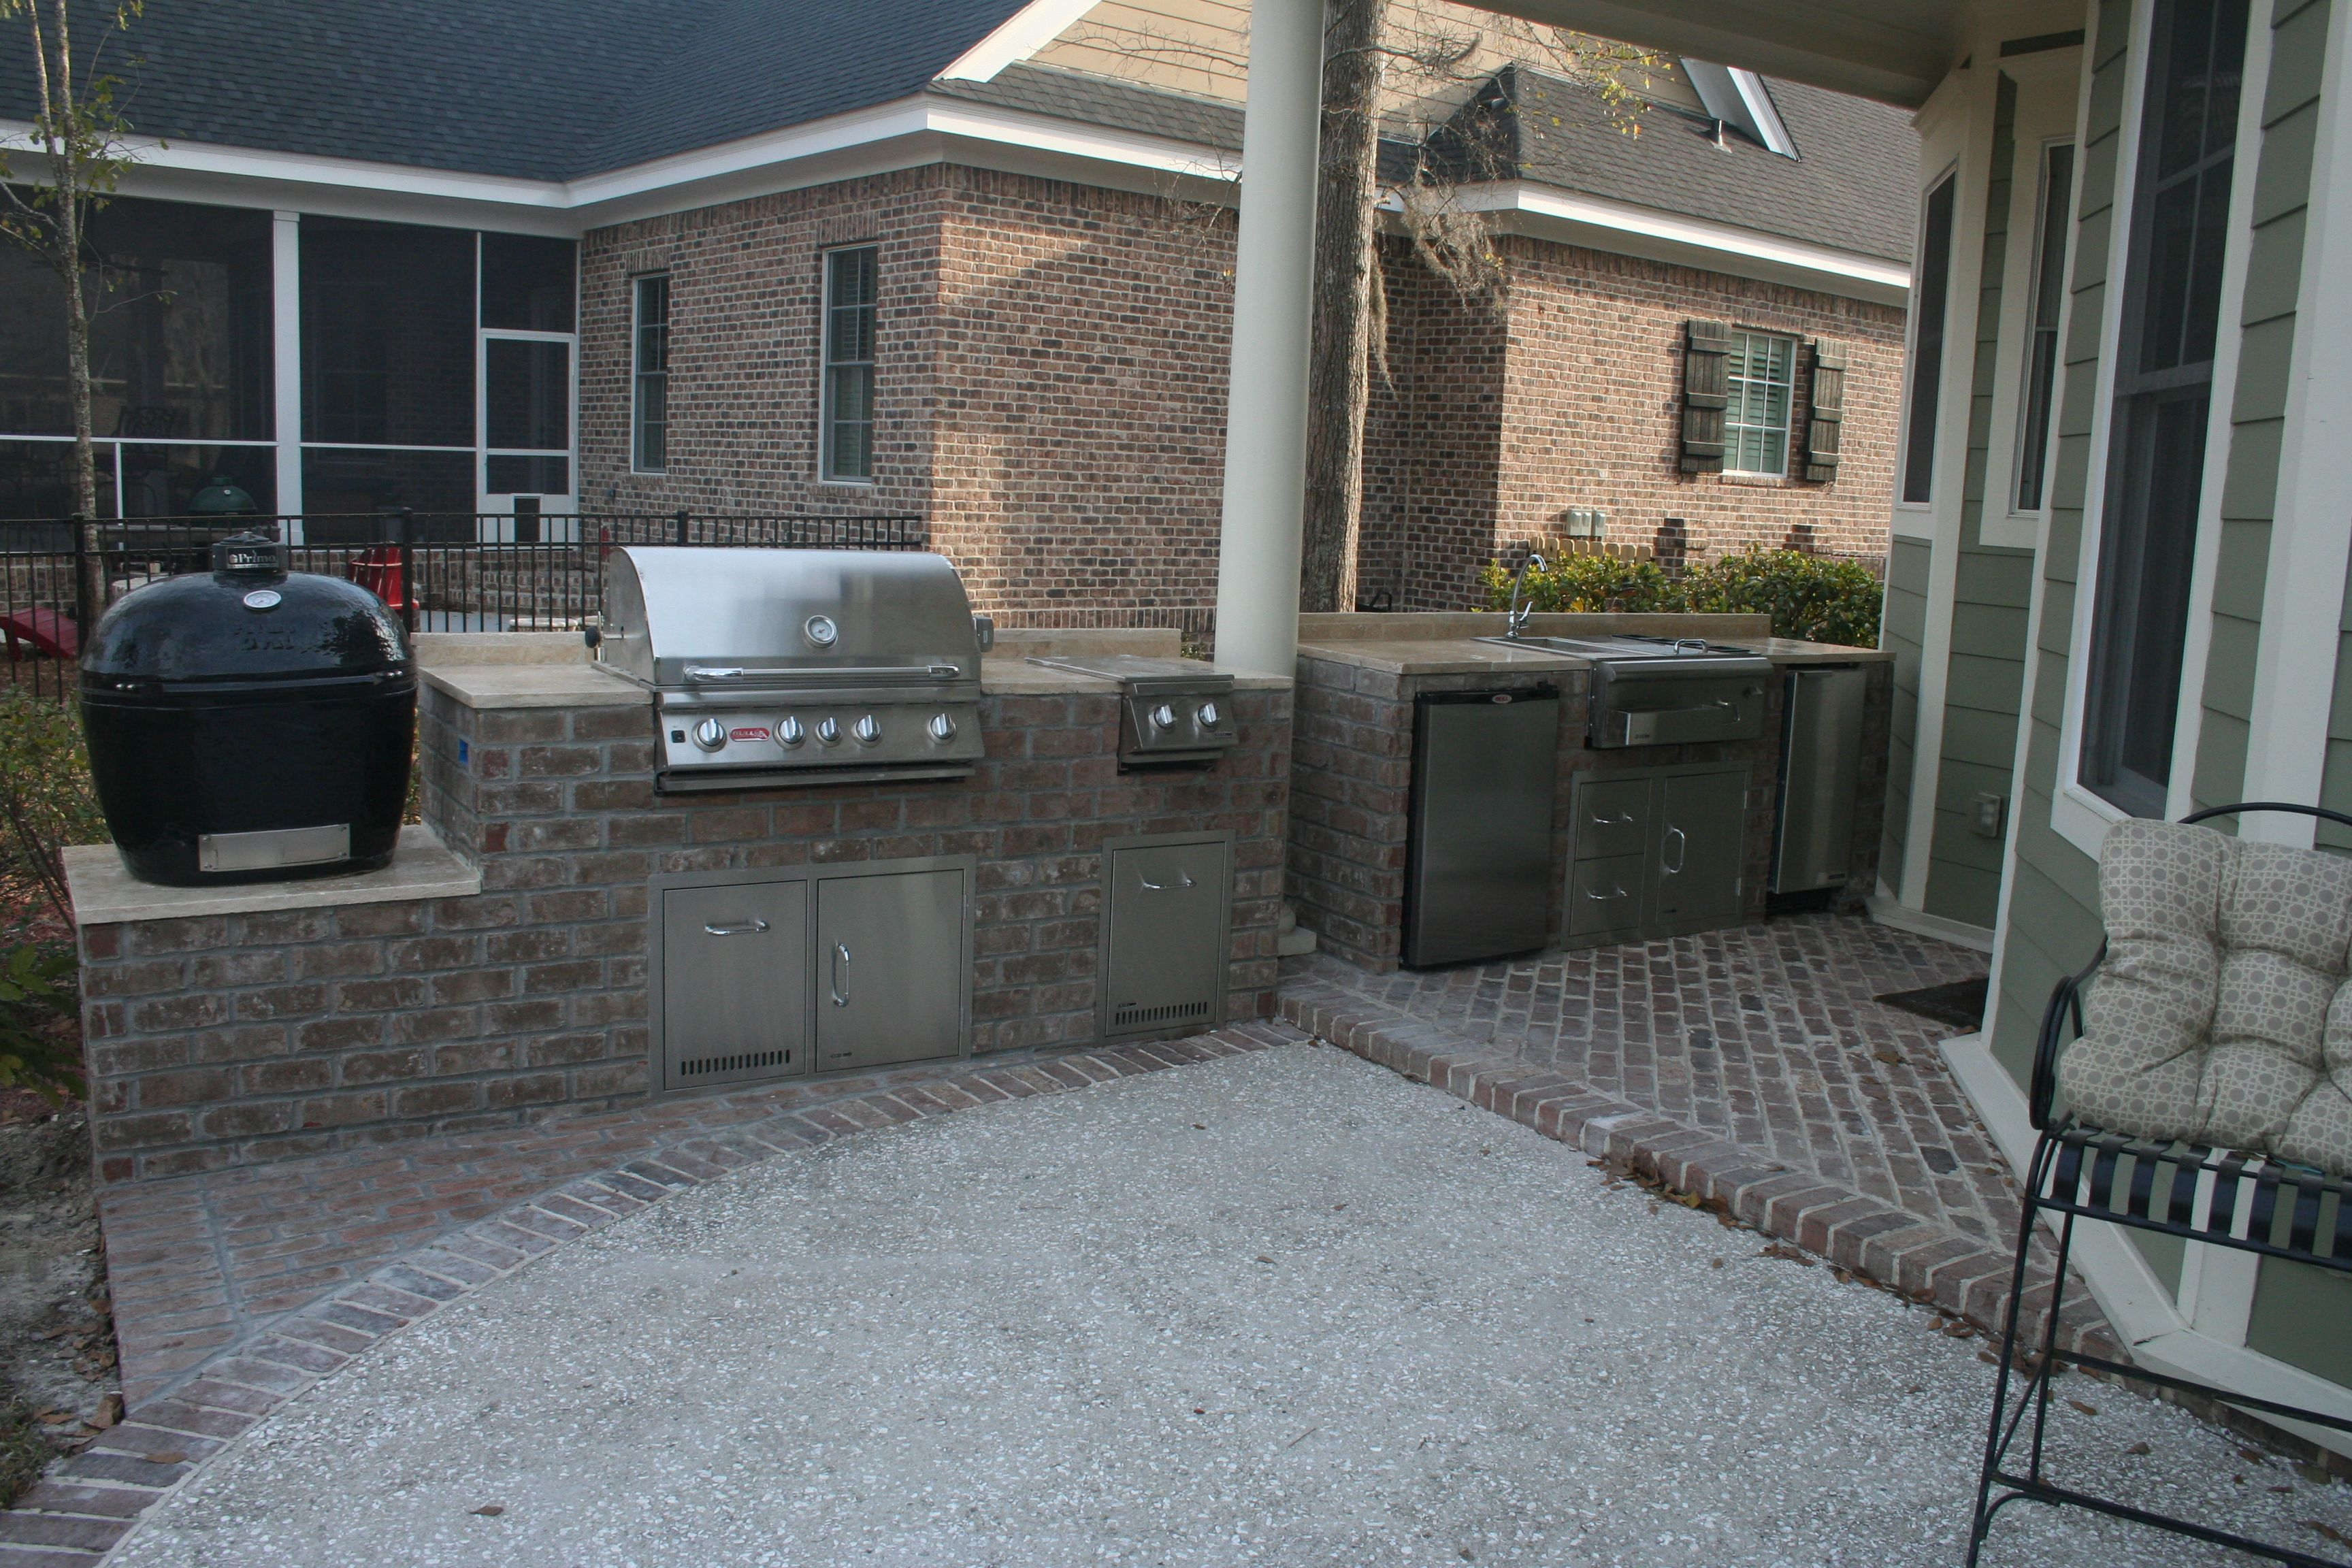 requirements size bbqs propane overhead cover ovens hood winchester pizza ventilation diy wood vent fire lights oven ventura vents outdoor microwave kitchens panel trends magic brick in appliance venting kitchen hoods gas full design